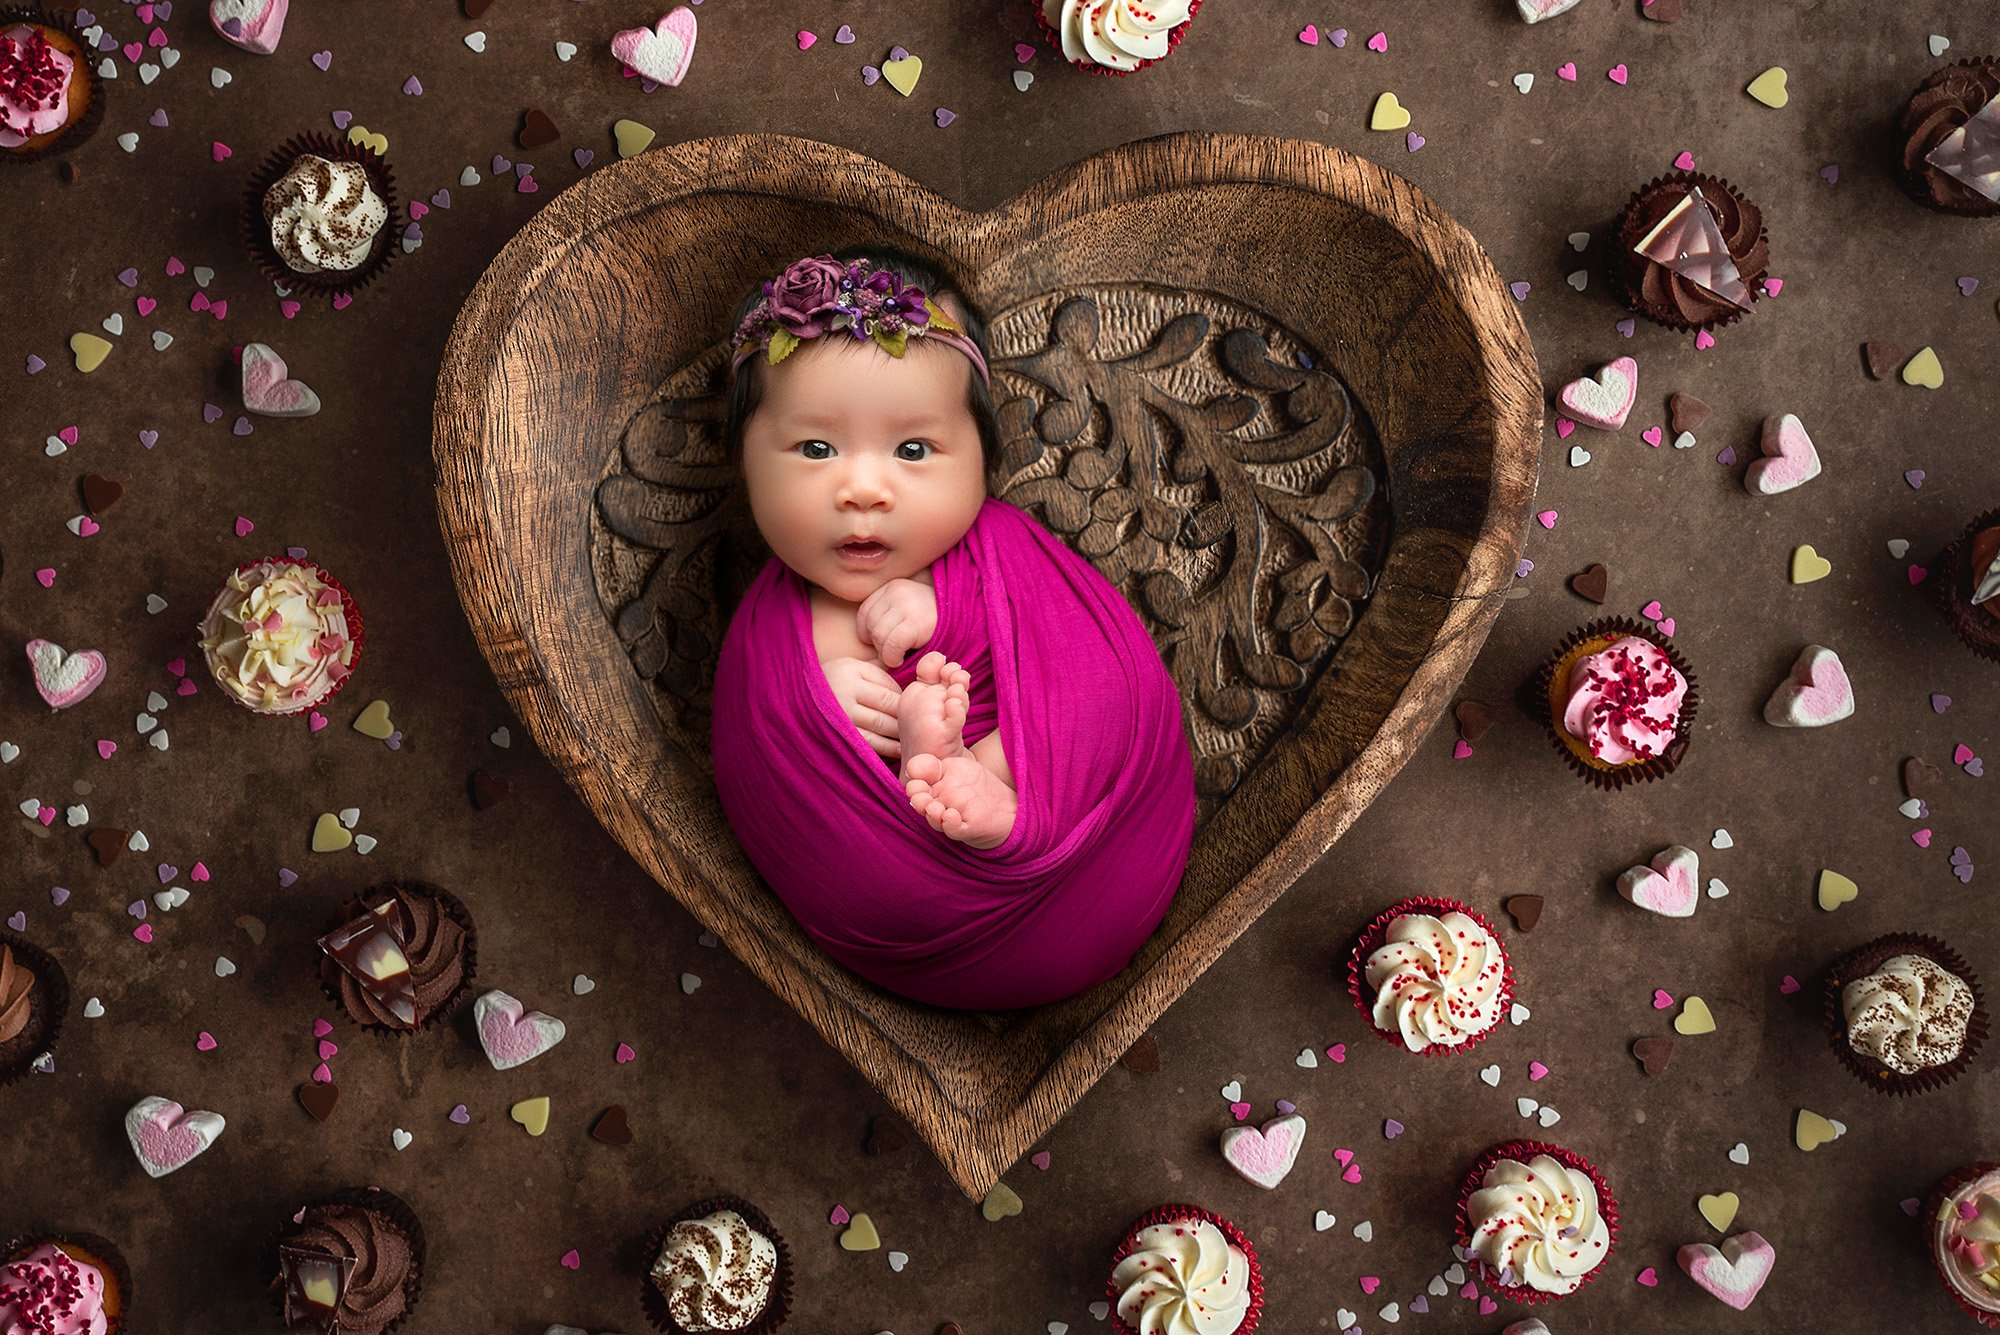 awake newborn baby girl swaddled in magenta wrap wearing purple floral headband laying in wooden heart bowl surrounded by cupcakes and heart candies